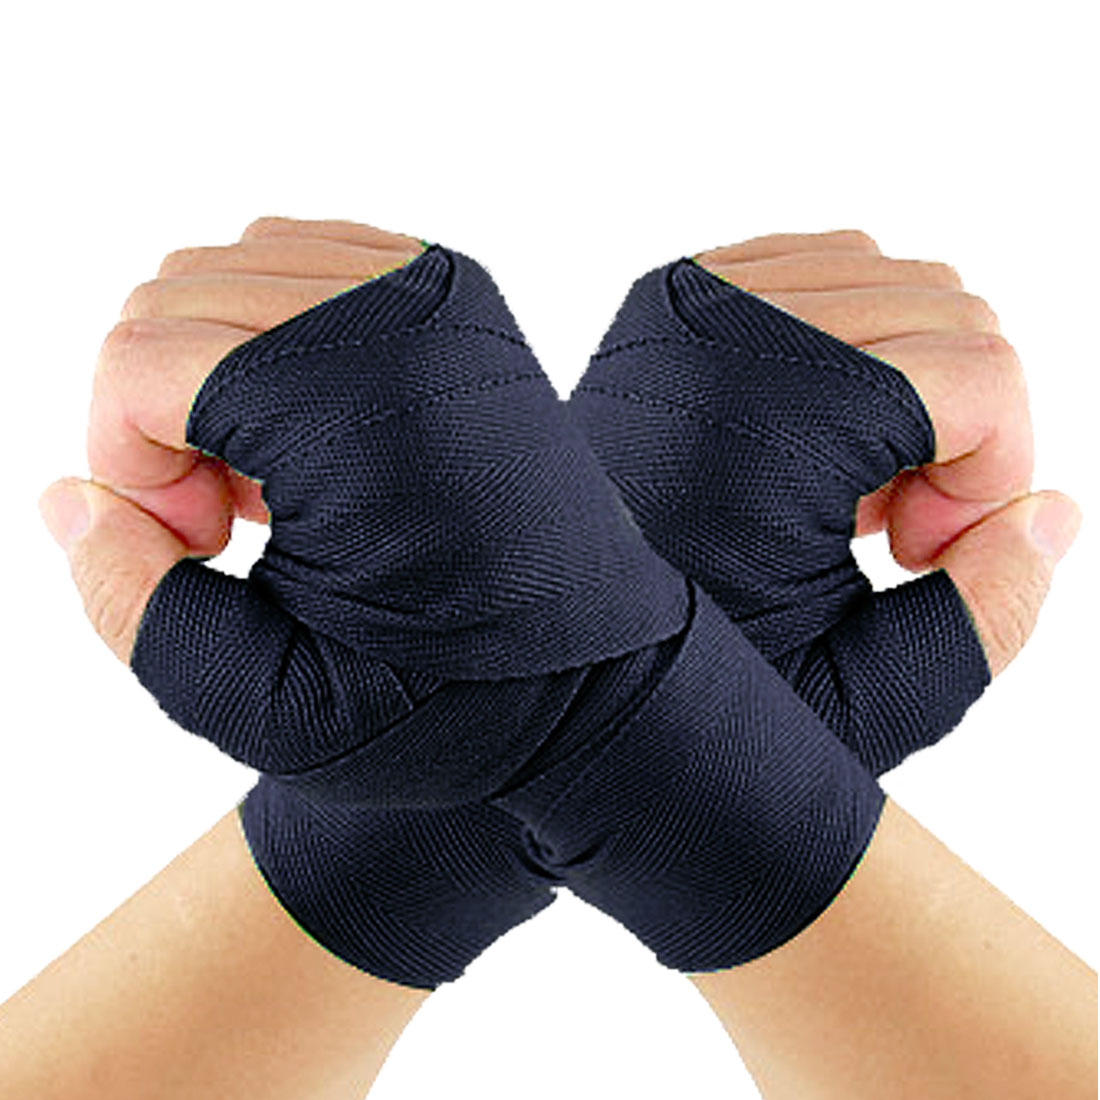 Pair Navy Blue Kickboxing Textured Fabric Hand Wraps Bandages Protector